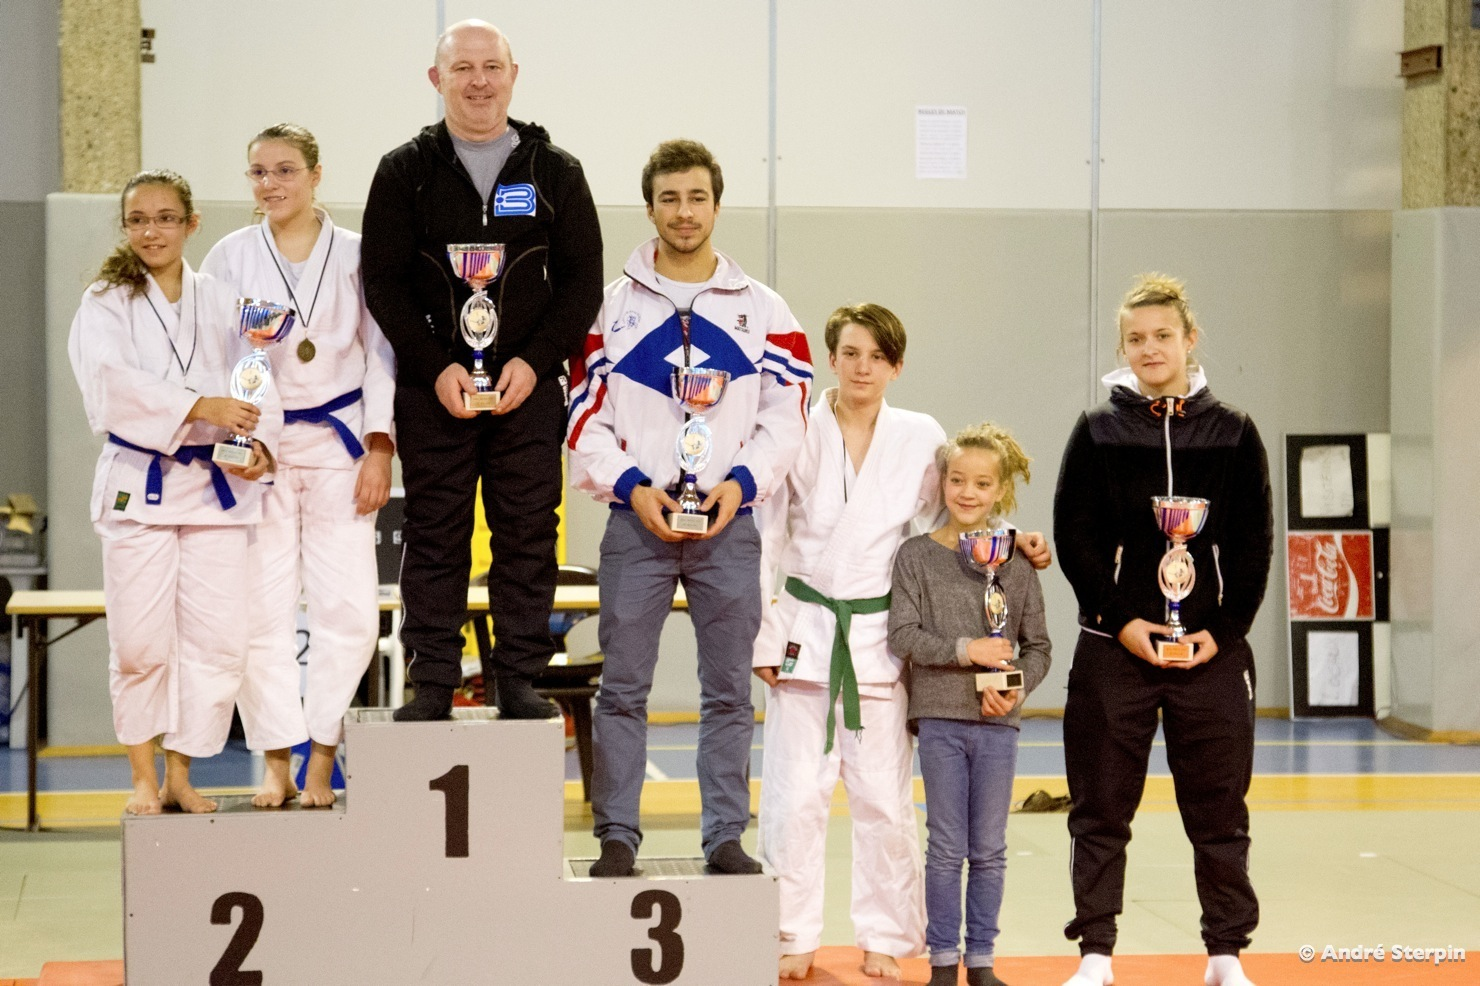 club judo woluwe saint pierre